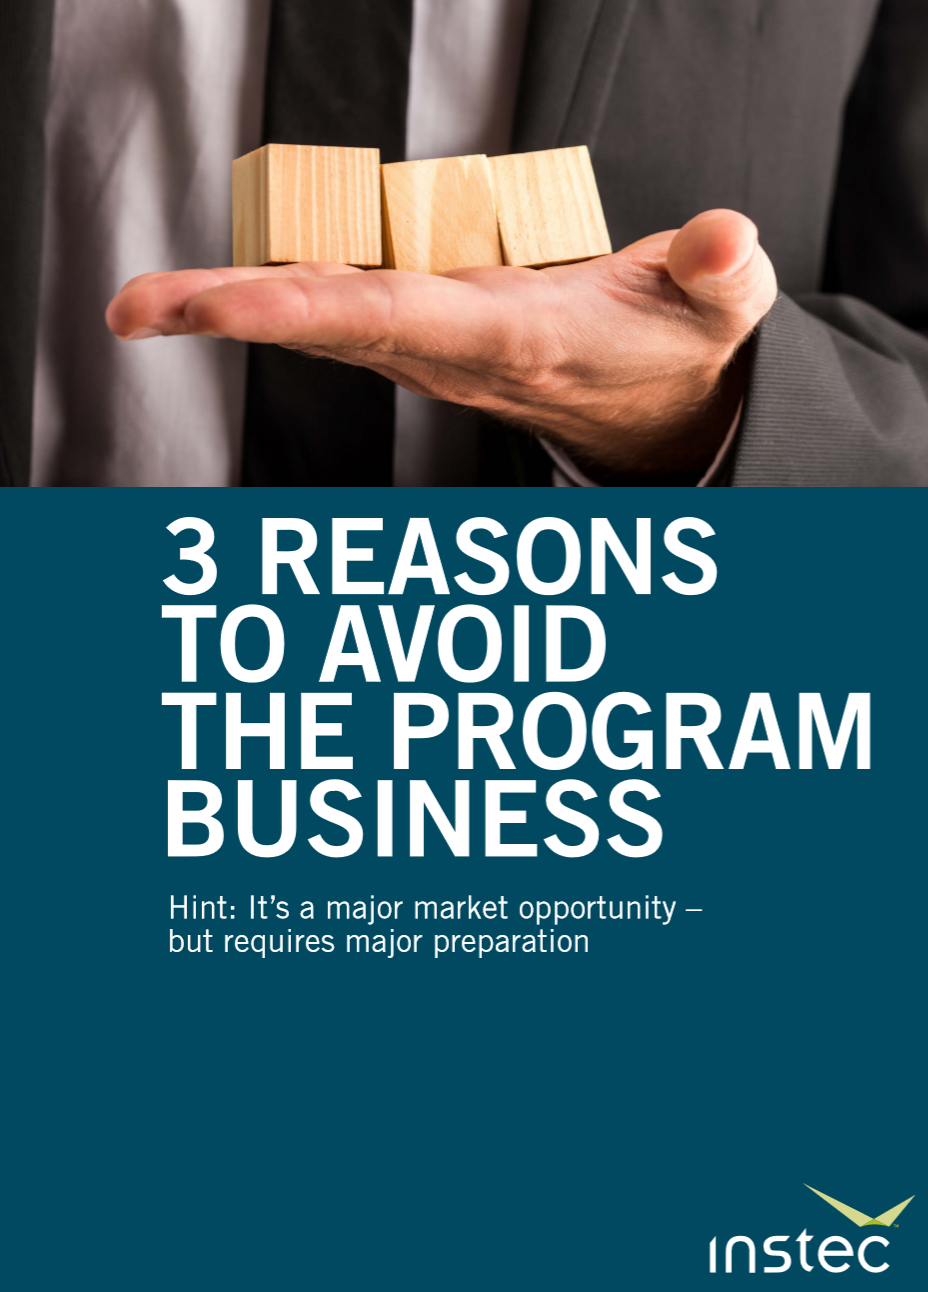 3 Reasons to Avoid the Program Business